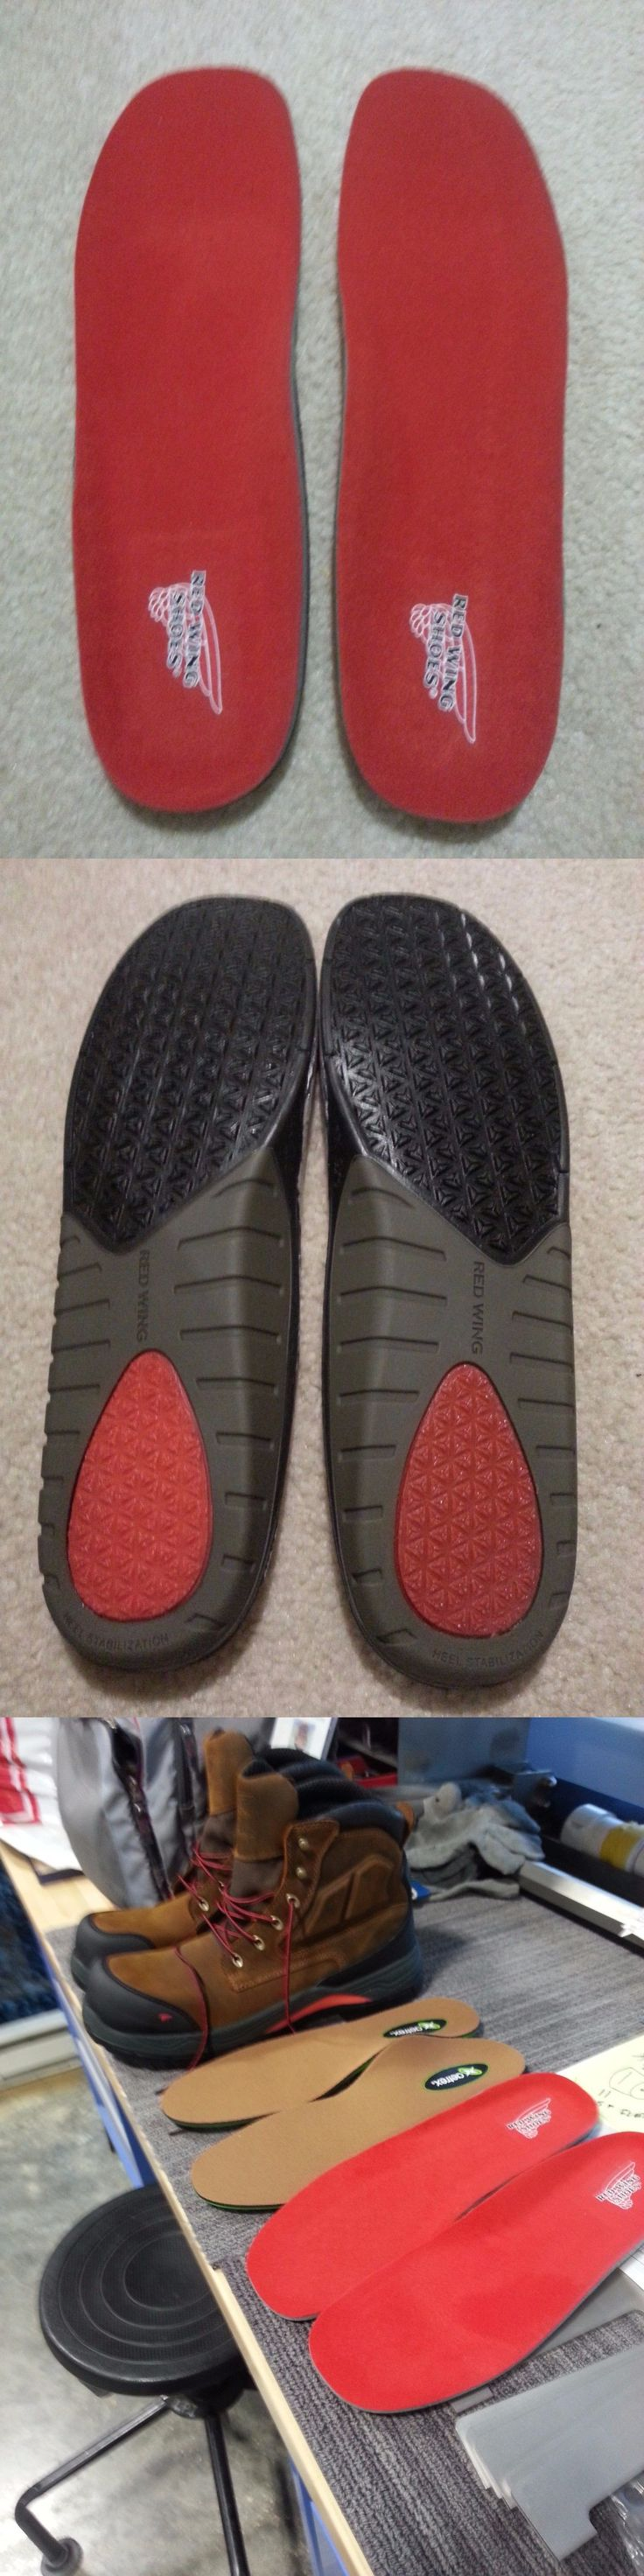 Shoe Insoles 169284: Brand New Men S Red Wing Insoles Size 14 From Style #4402 Boots -> BUY IT NOW ONLY: $30 on eBay!